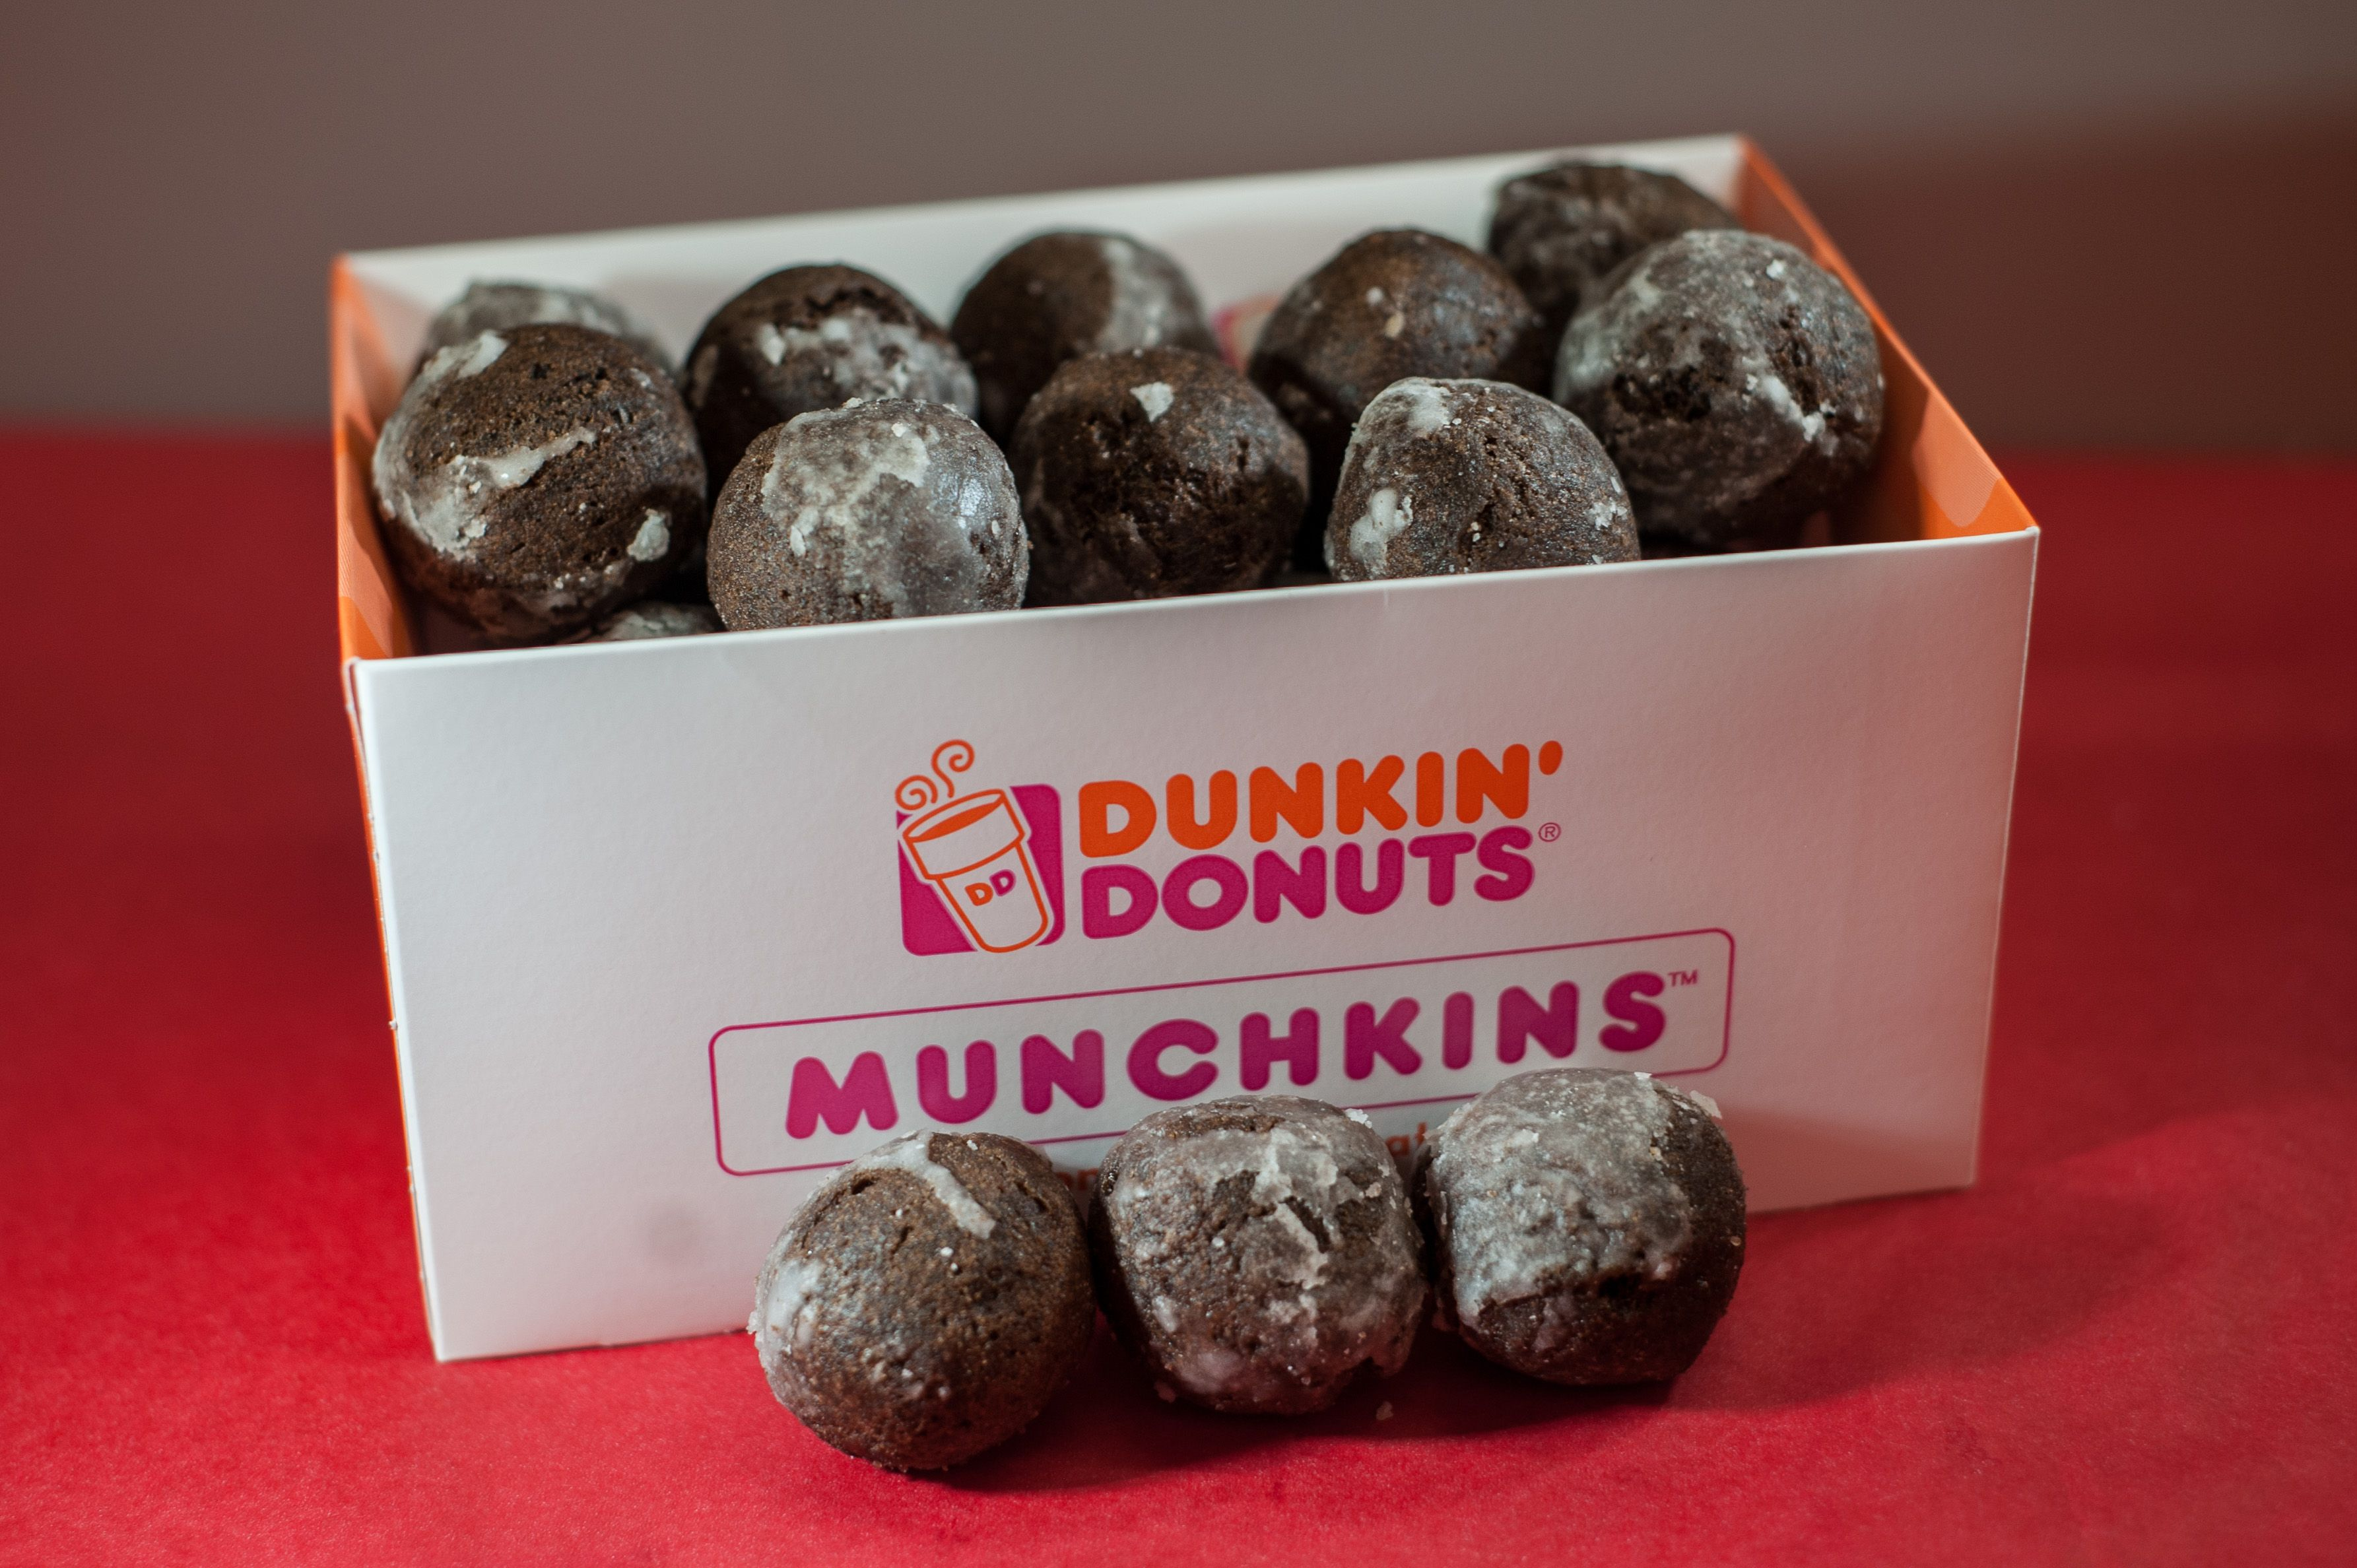 Munchkins 25 Munchkins Chocolate Glazed Dunkin Donuts Donuts Restaurant Recipes